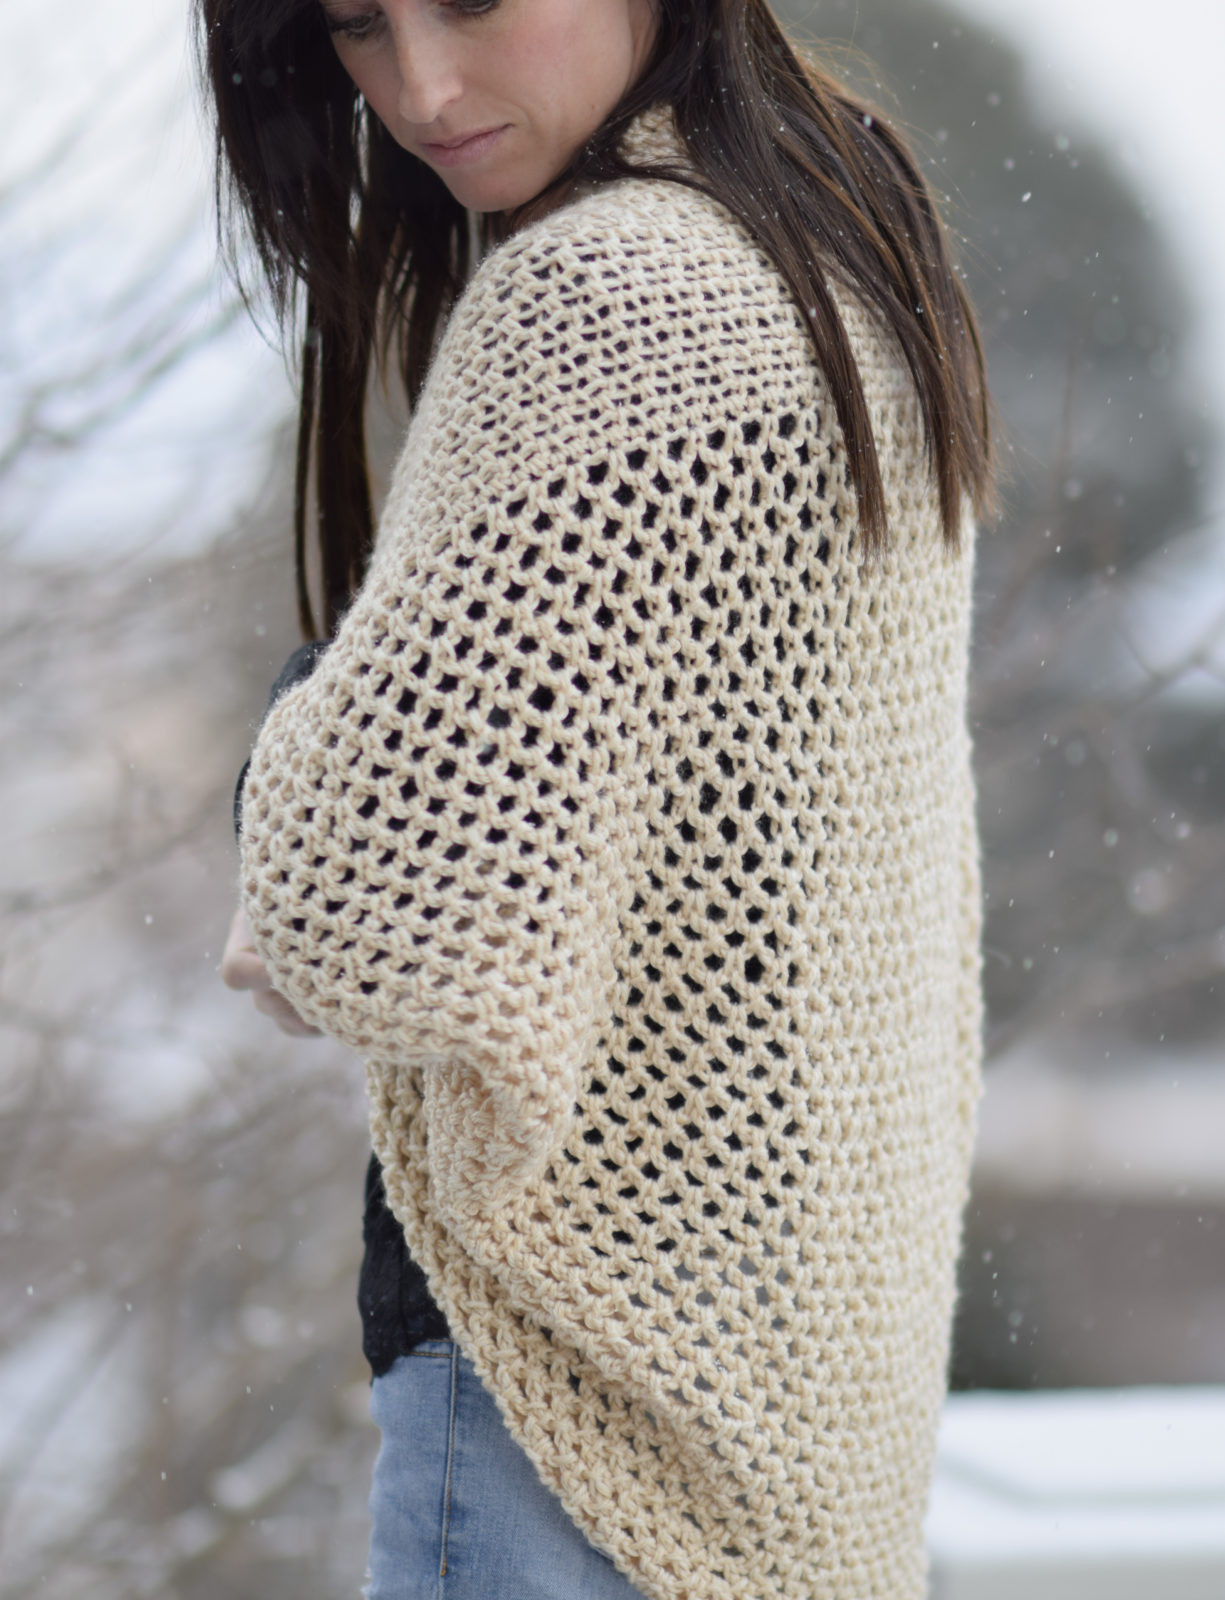 Sweater Pattern Luxury Mod Mesh Honey Blanket Sweater – Mama In A Stitch Of New 40 Photos Sweater Pattern